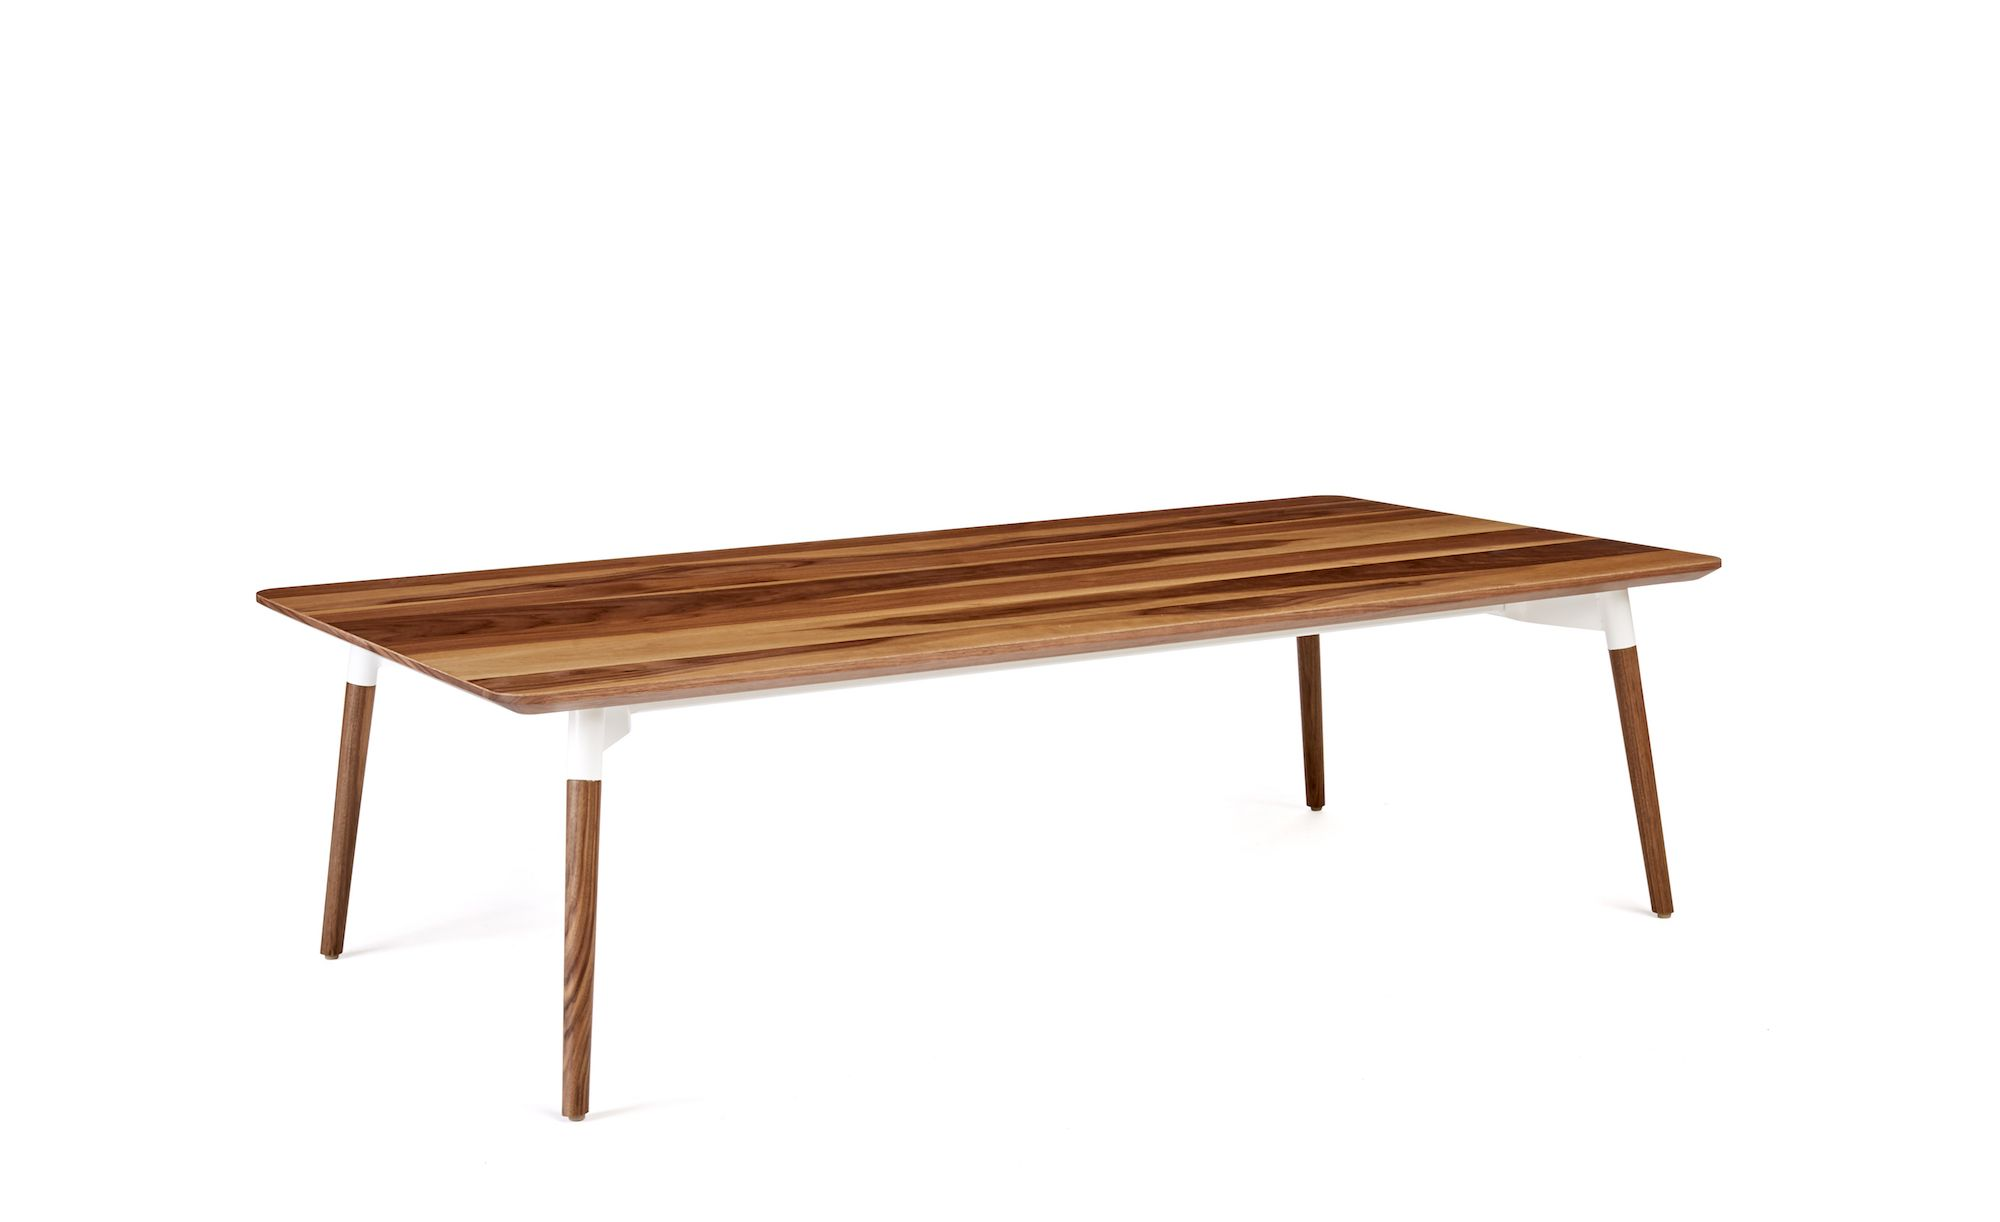 Admirable Hightower Bello Tables Table Furniture Dining Bench Machost Co Dining Chair Design Ideas Machostcouk